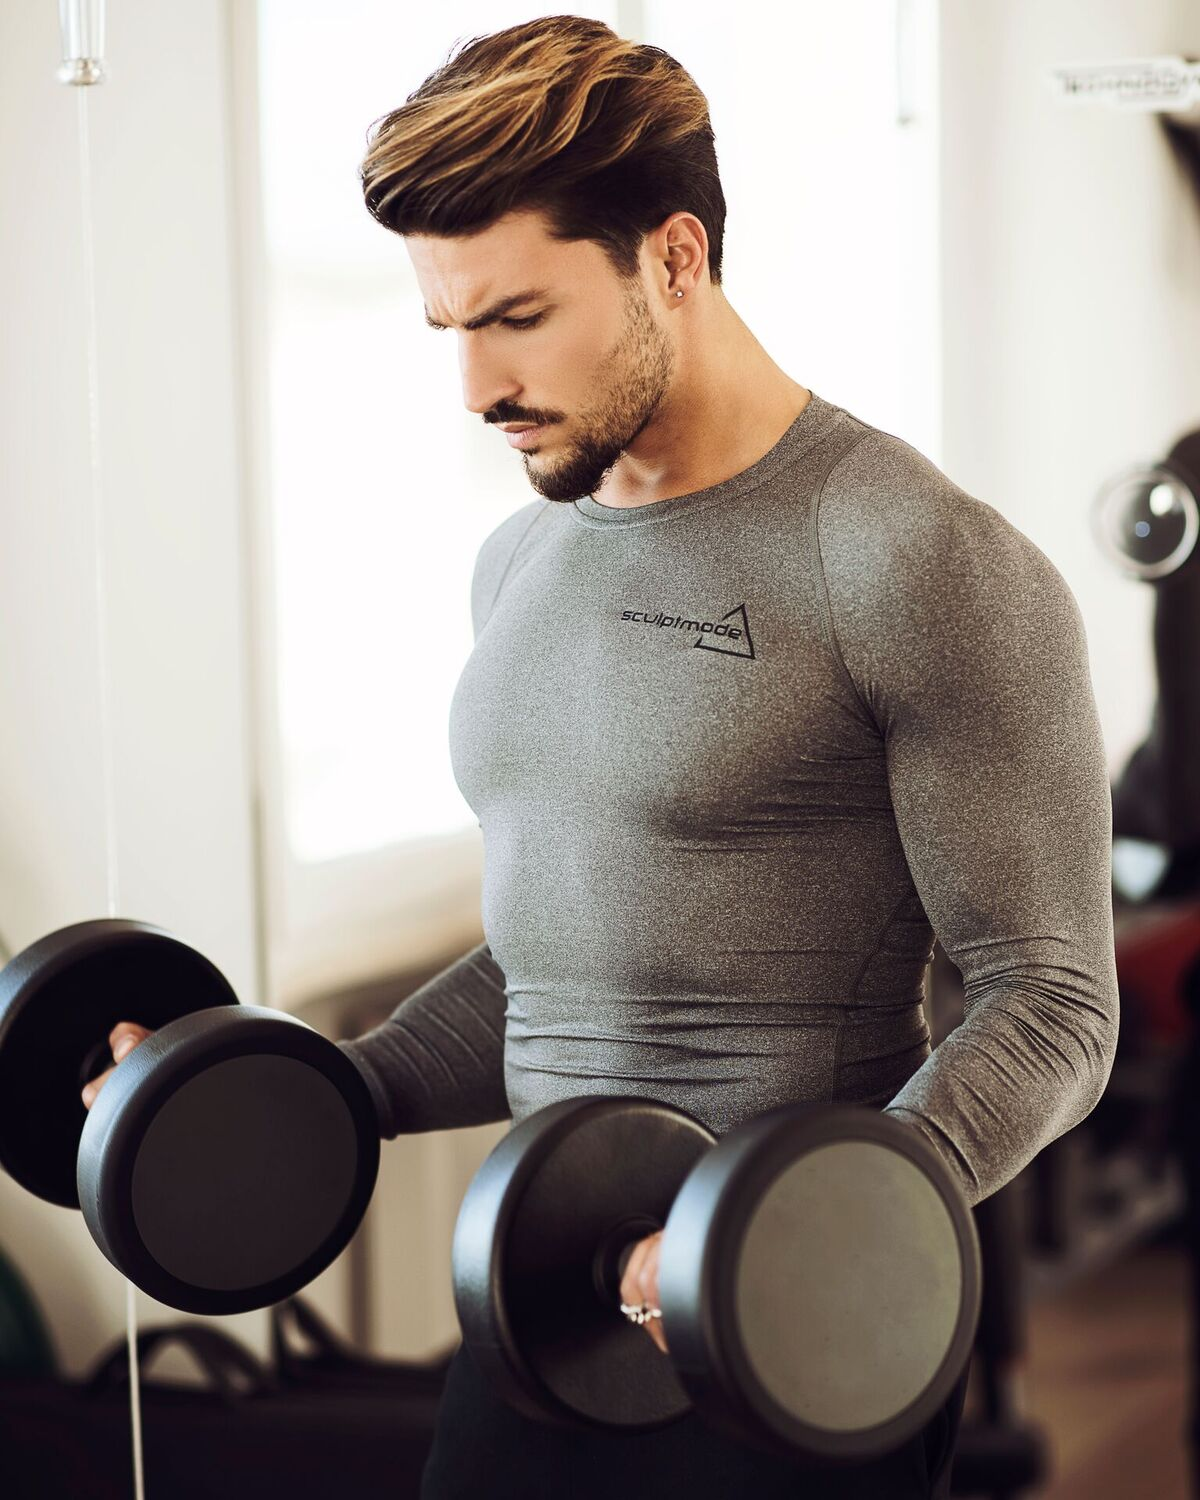 model wearing Sculptmode Compression Top and Joggers